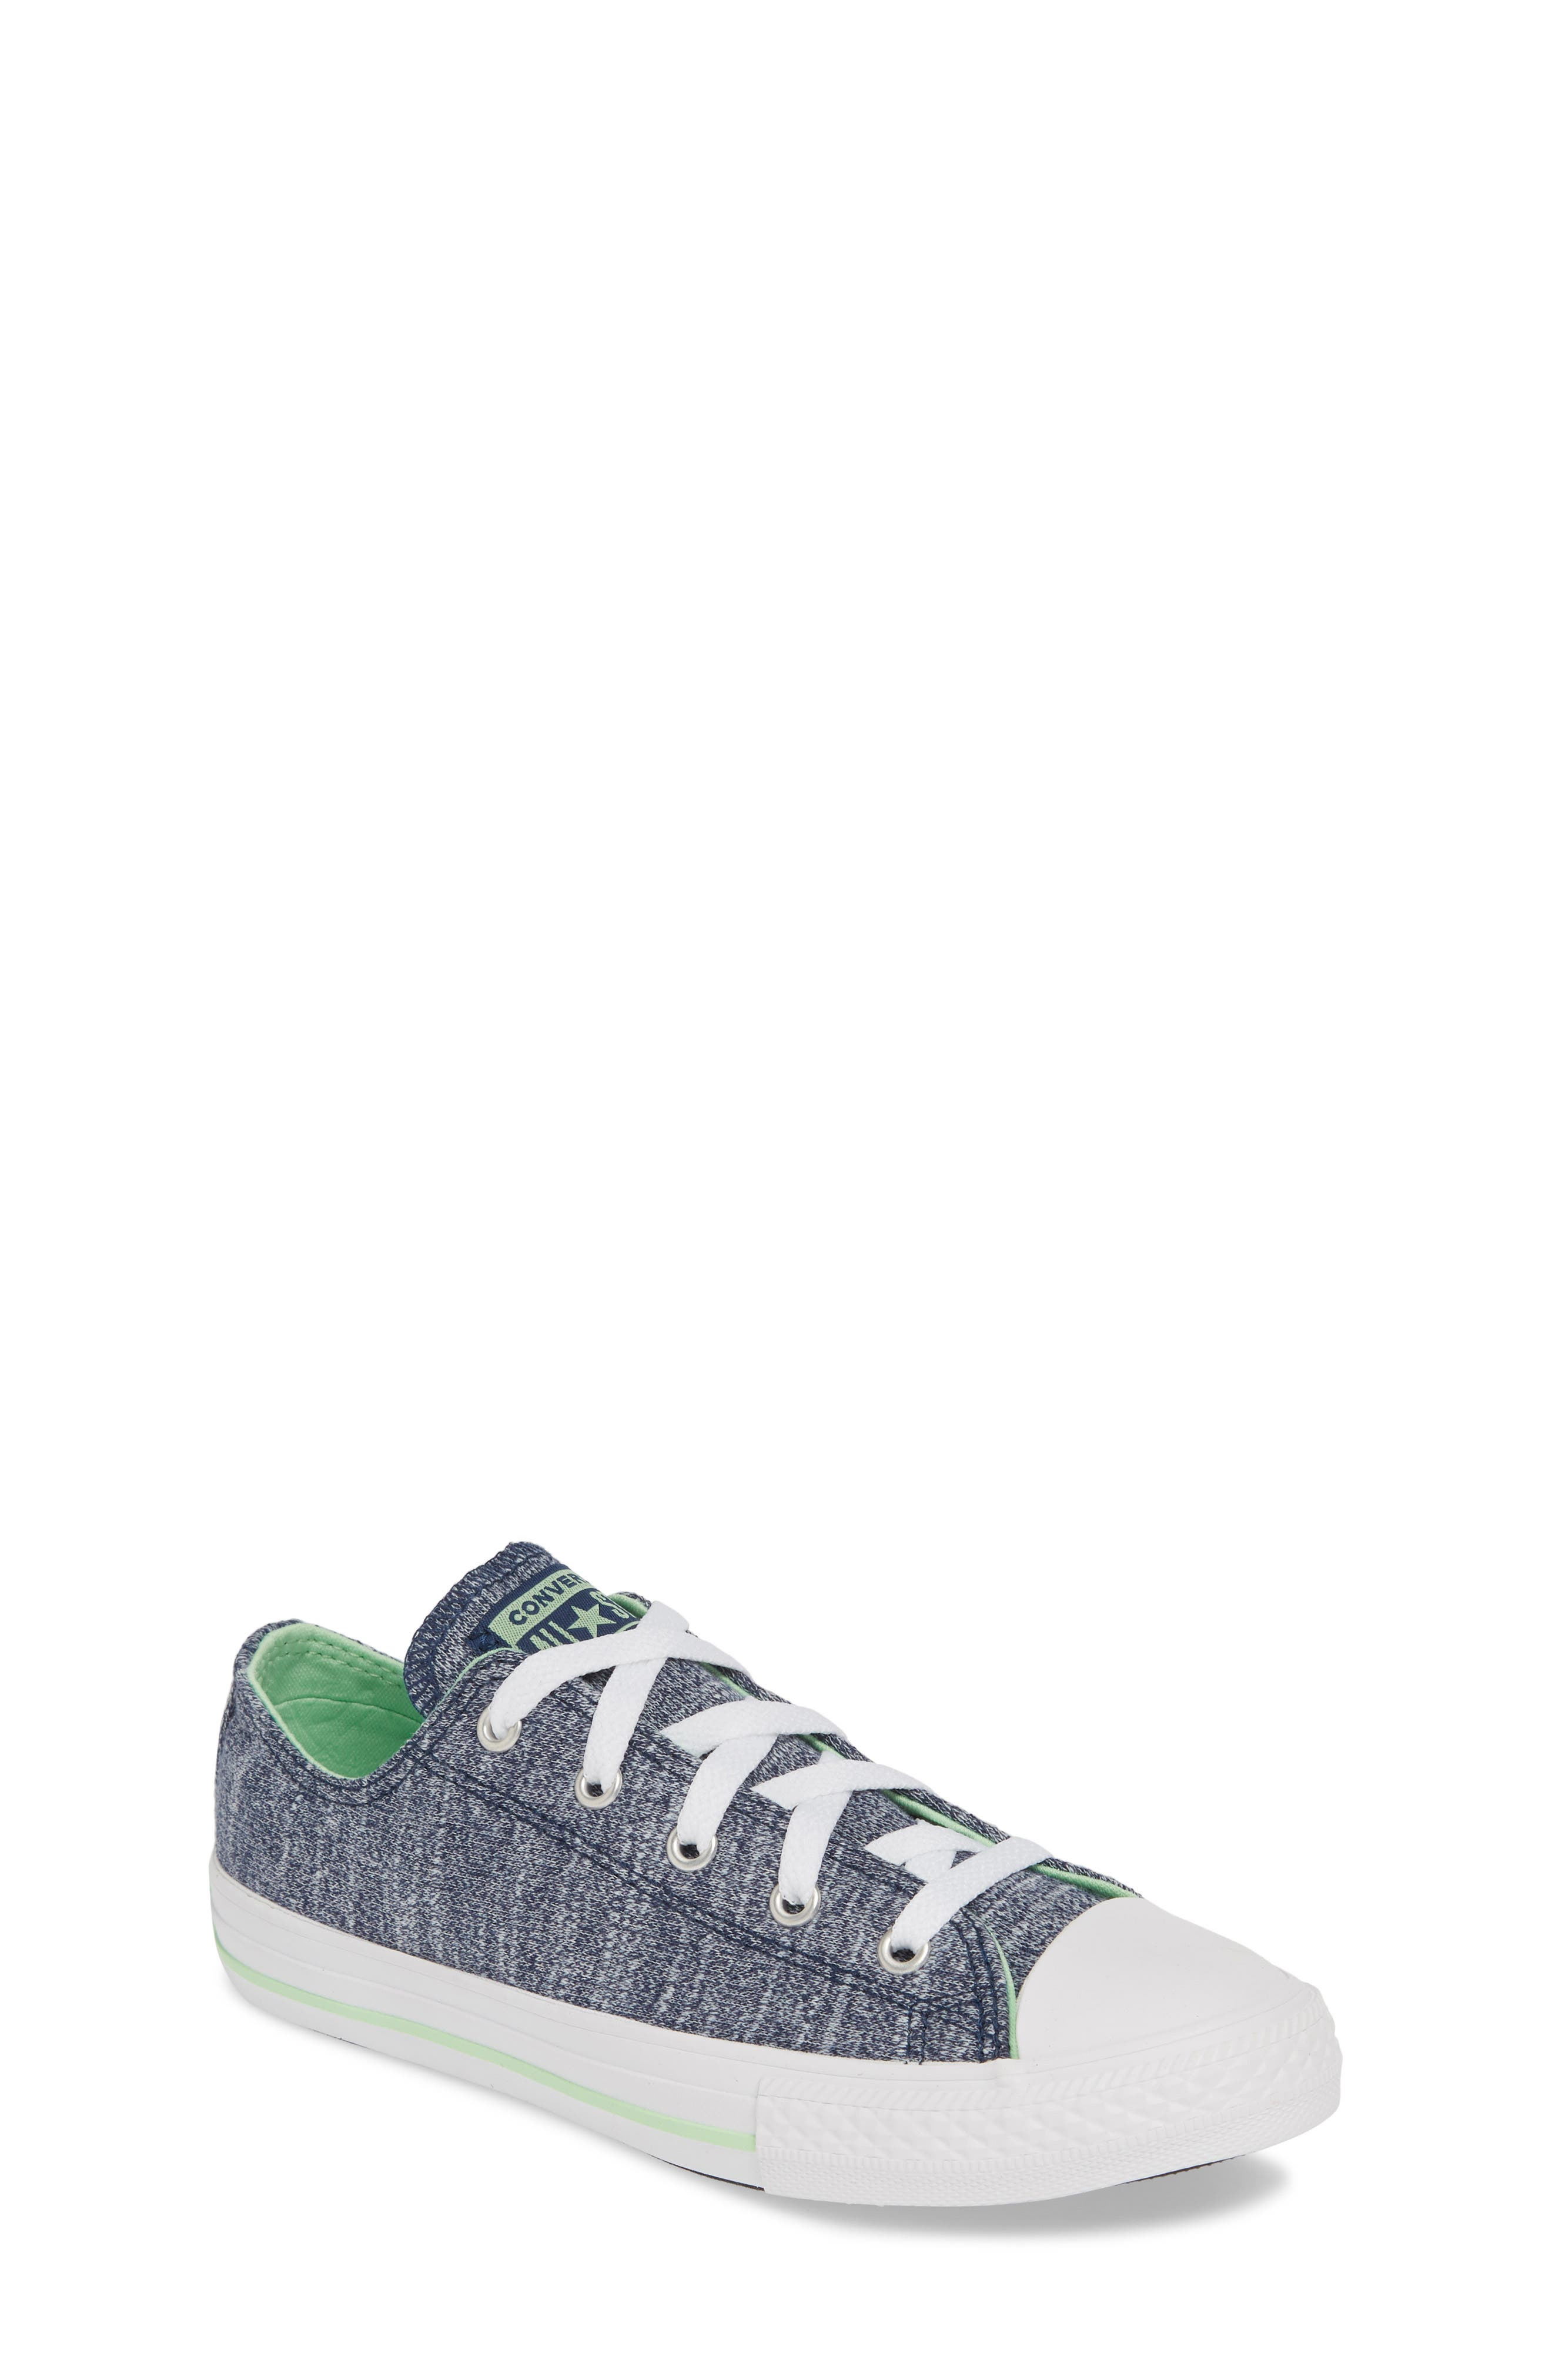 Toddler Converse Chuck Taylor All Star Low Top Sneaker Size 12 M  Blue